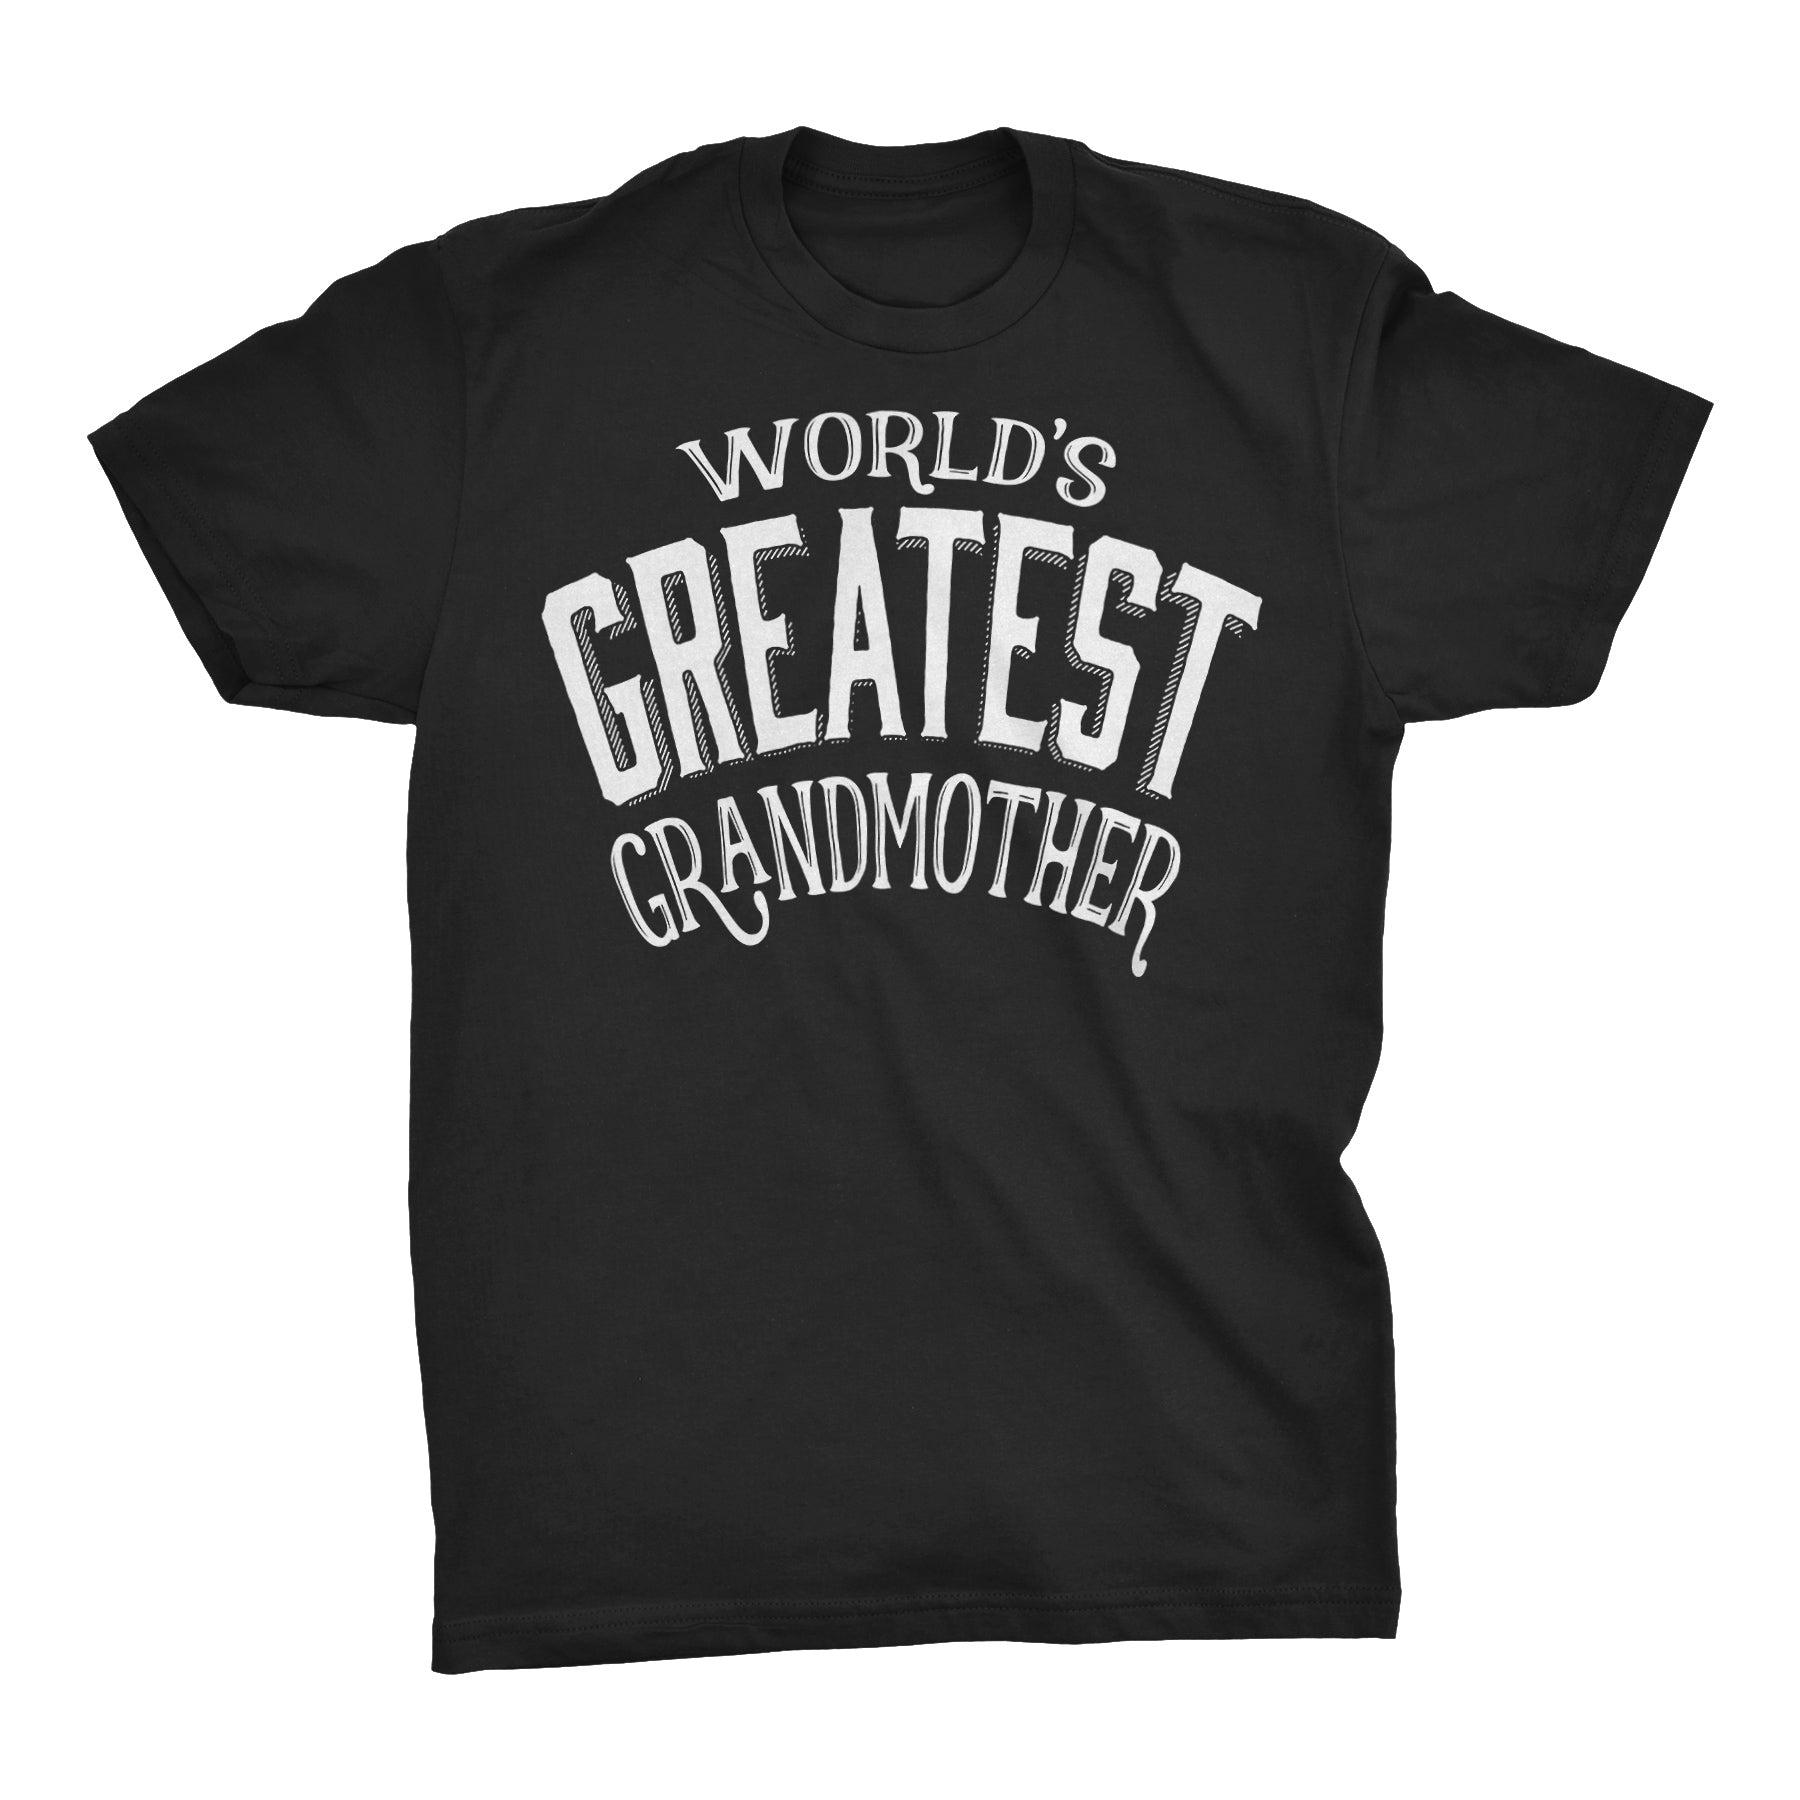 World's Greatest GRANDMOTHER - 001 Mother's Day Grandma T-shirt